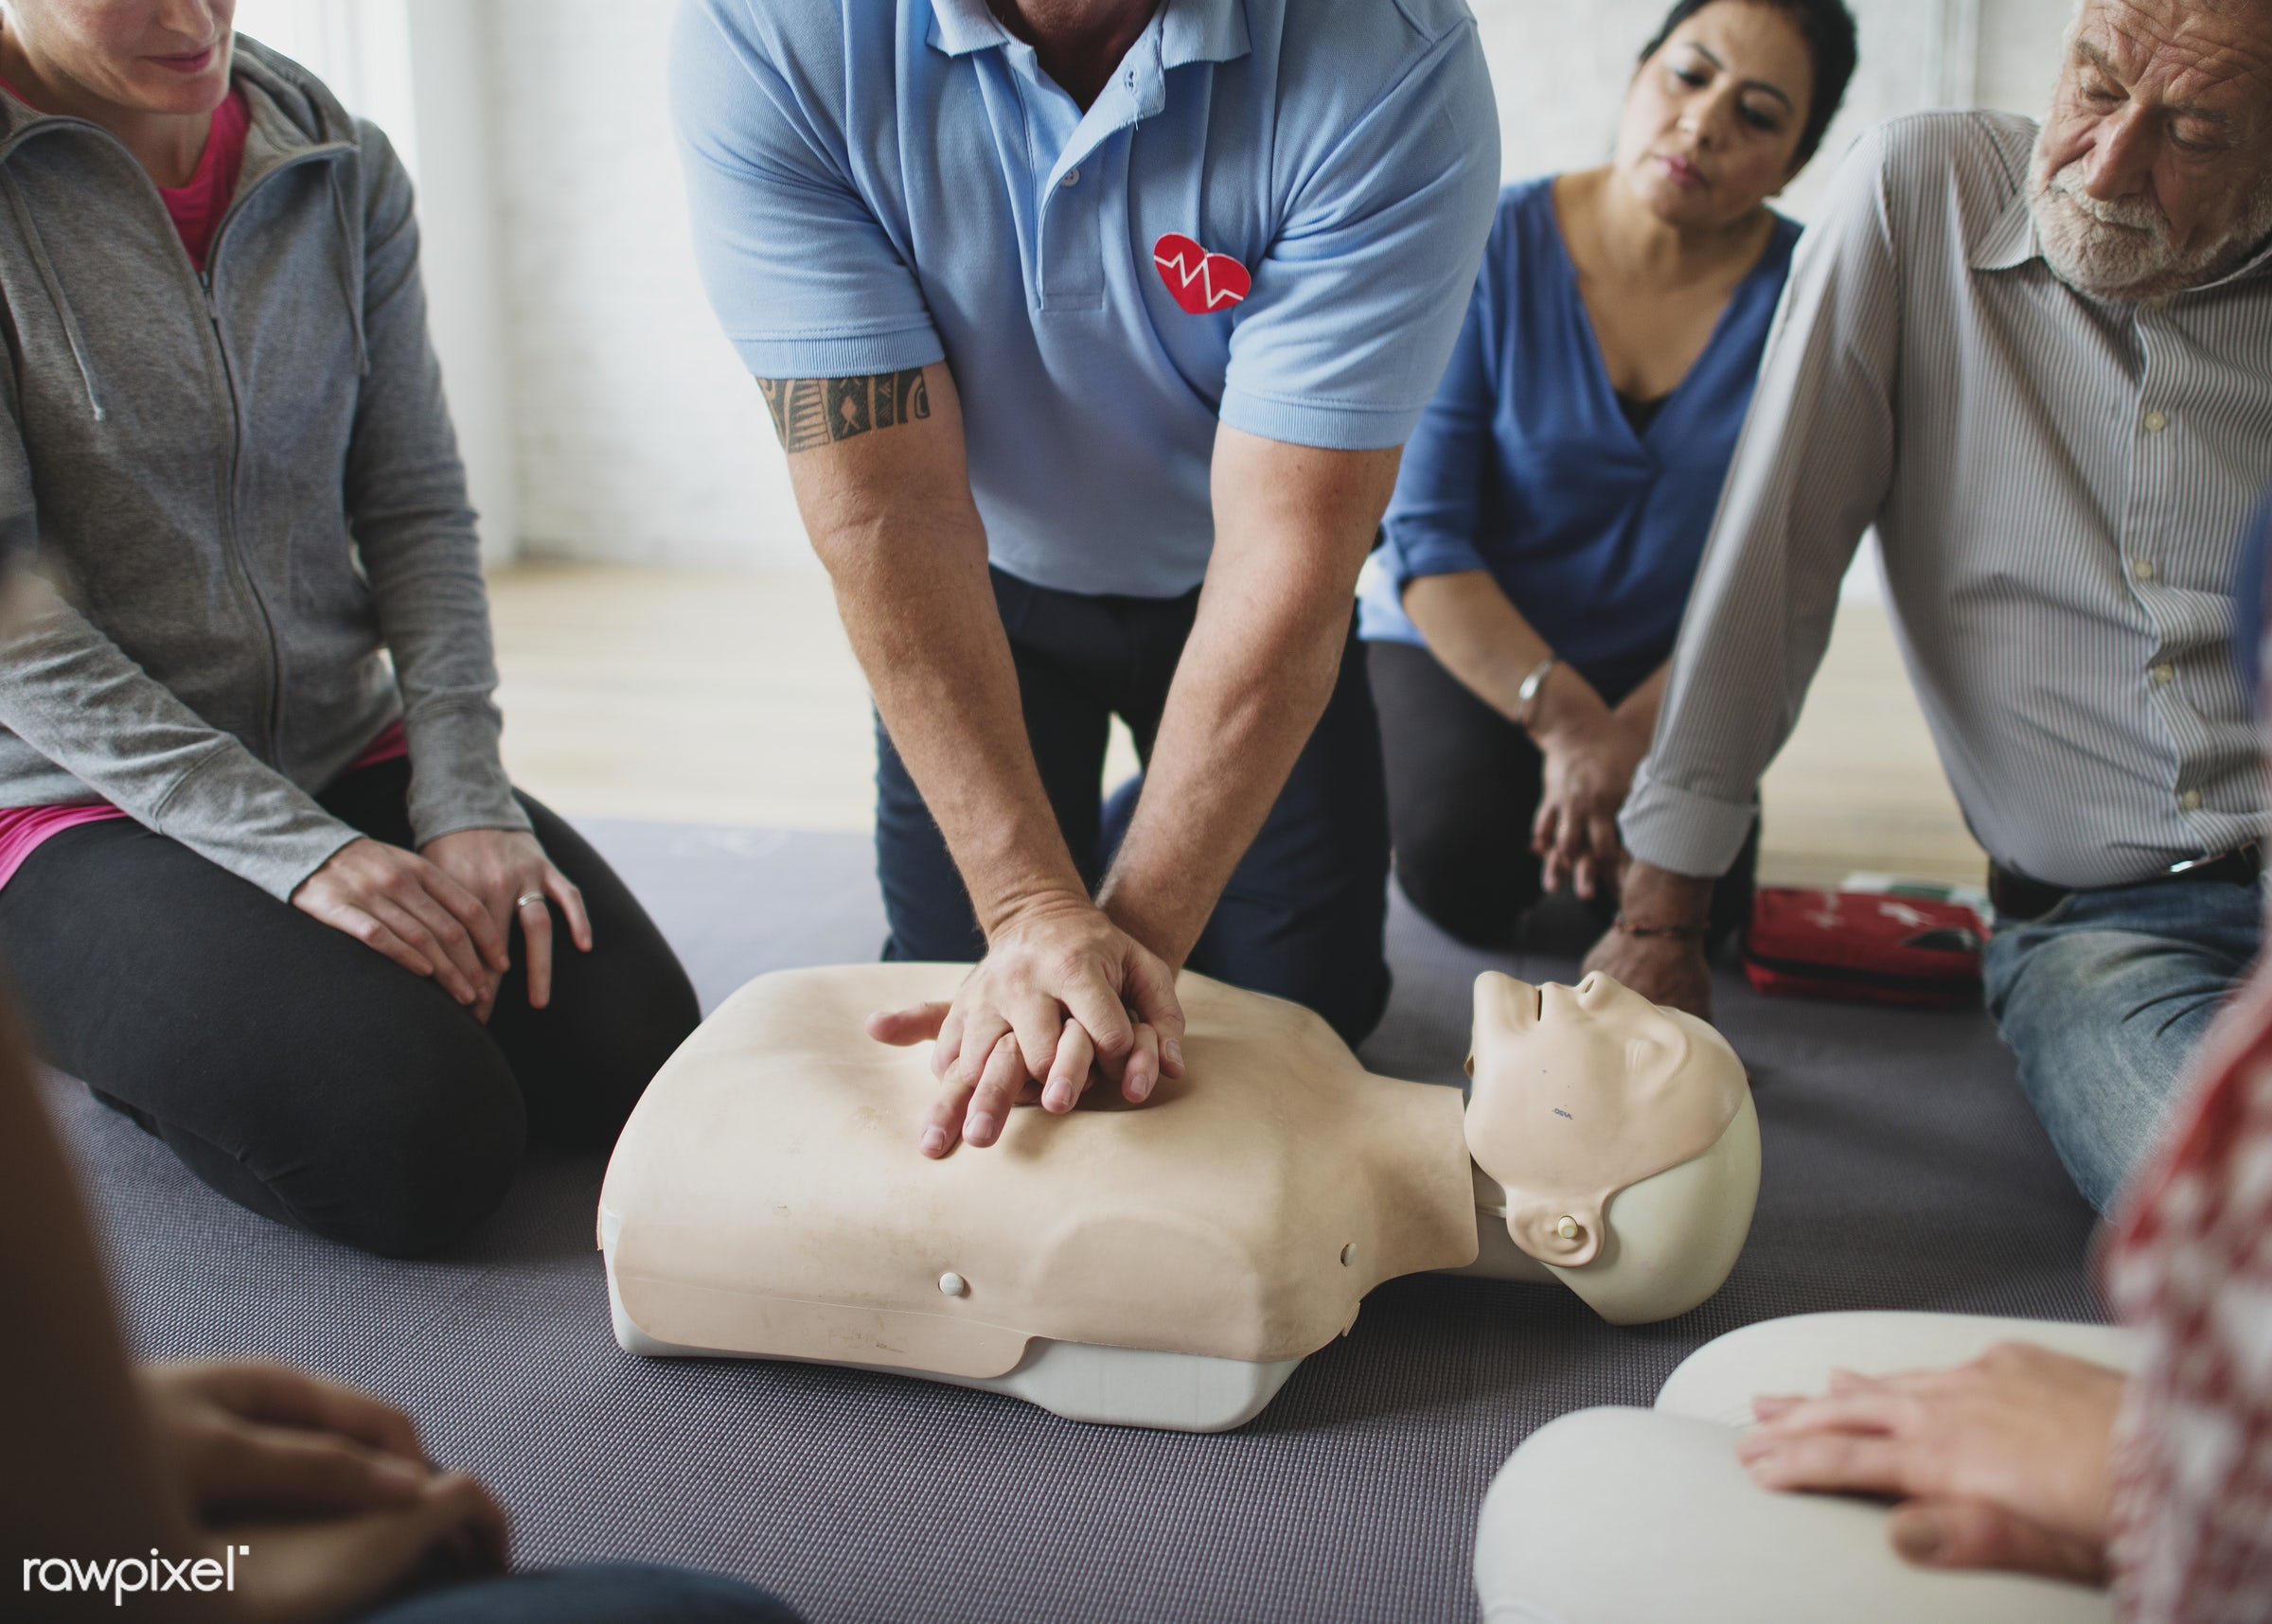 CPR first aid training class - cpr training, person, knowledge, save, first aid, resuscitation, treatment, emergency,...